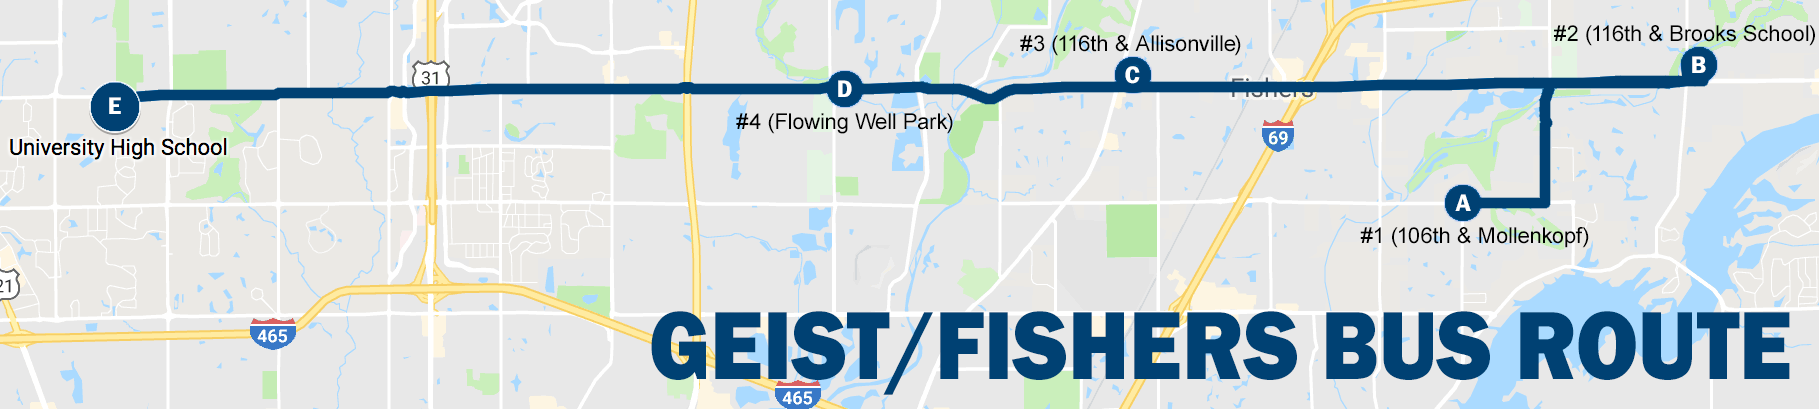 Geist/Fishers Bus Route